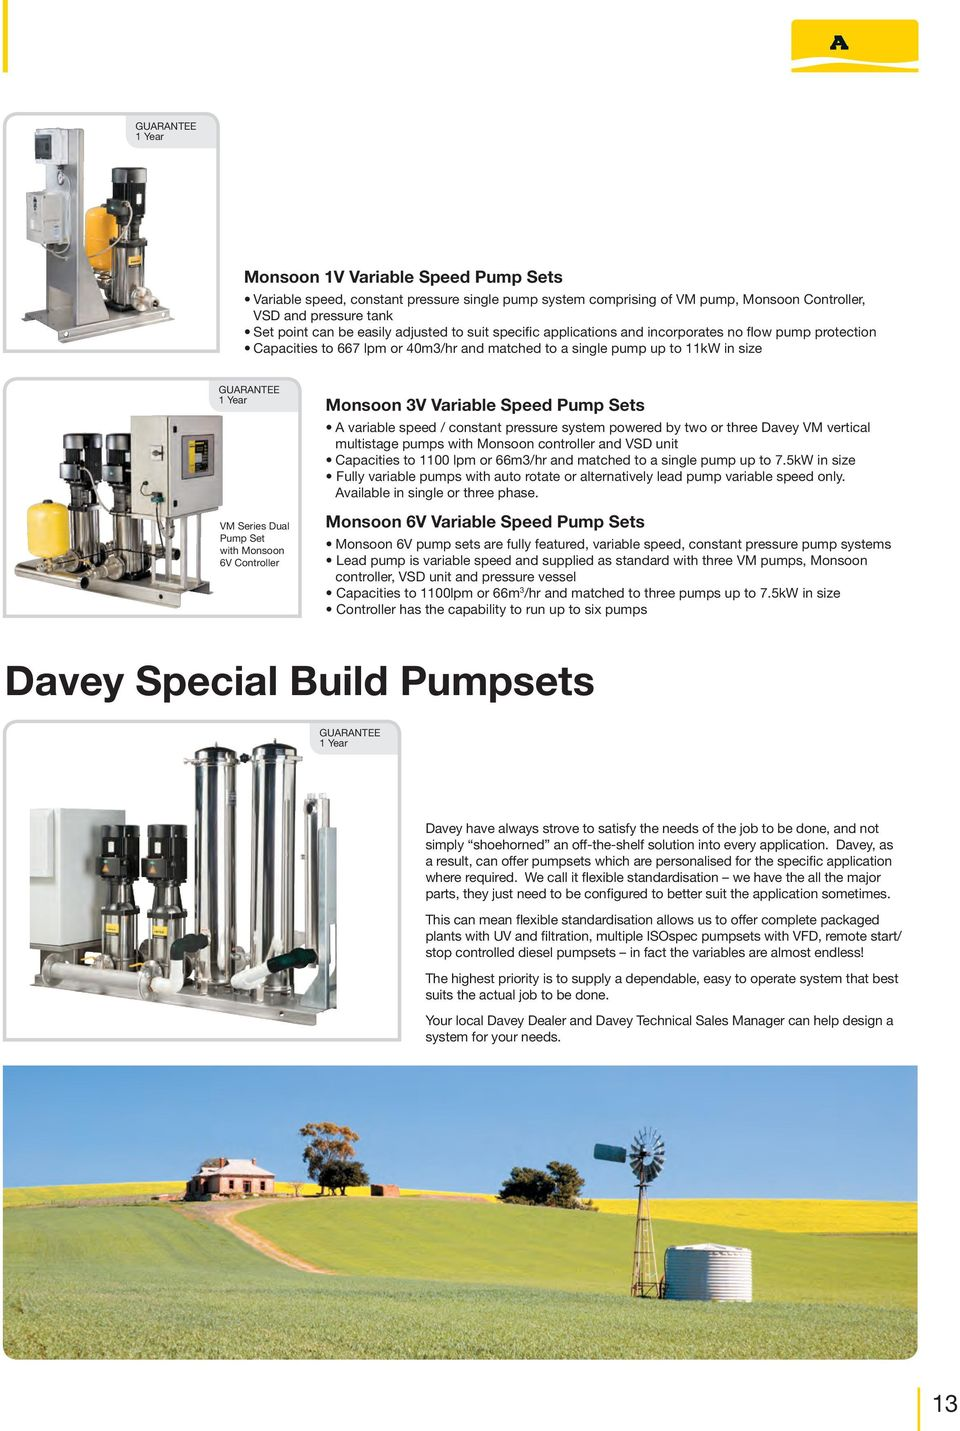 Davey Product Guide Irrigation Pumps Experts In Water Pdf Flygt Submersible Liberty Logo Godwin Pump Diagram With Monsoon 6v Controller 3v Variable Speed Sets A Constant Pressure 14 Firefighter